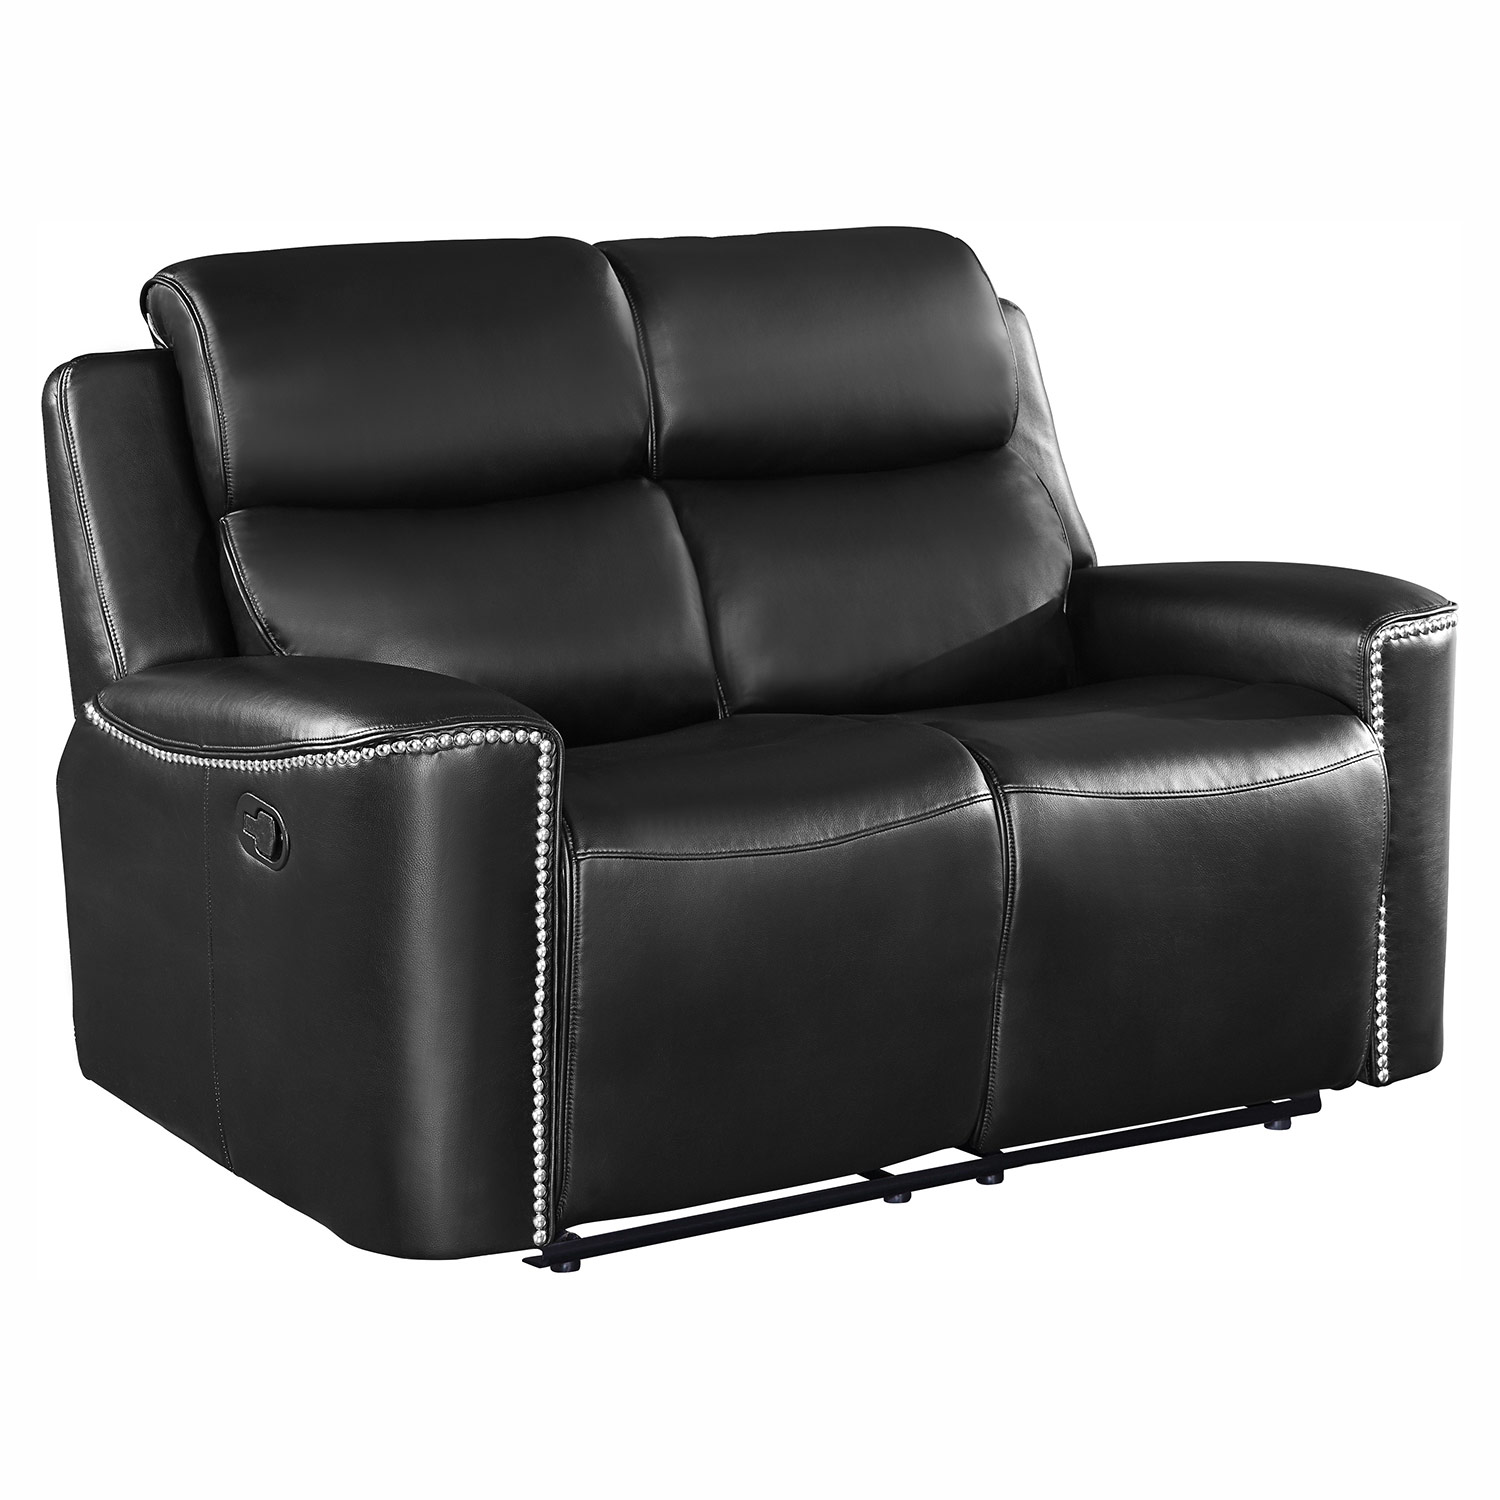 Homelegance Altair Double Reclining Love Seat - Black